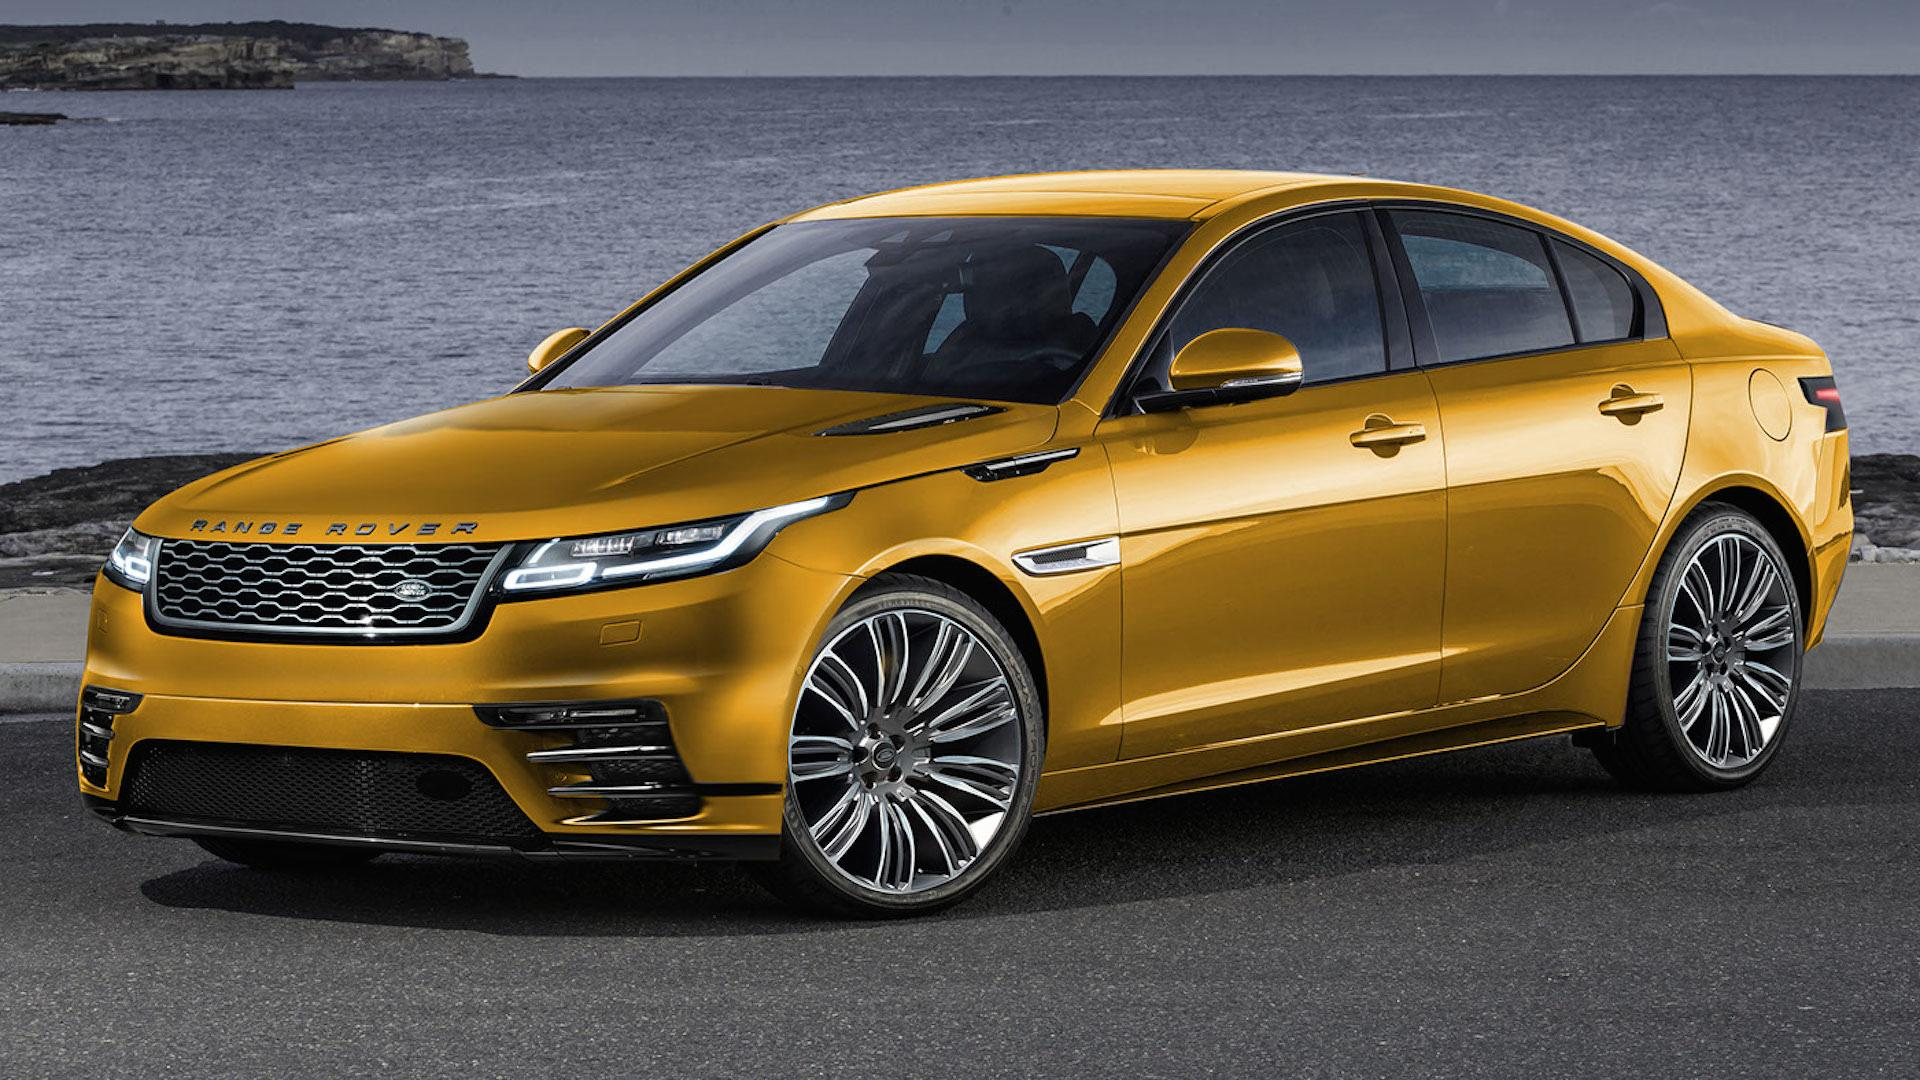 Road Rover Velar Rendering Shows There s Potential for a Range